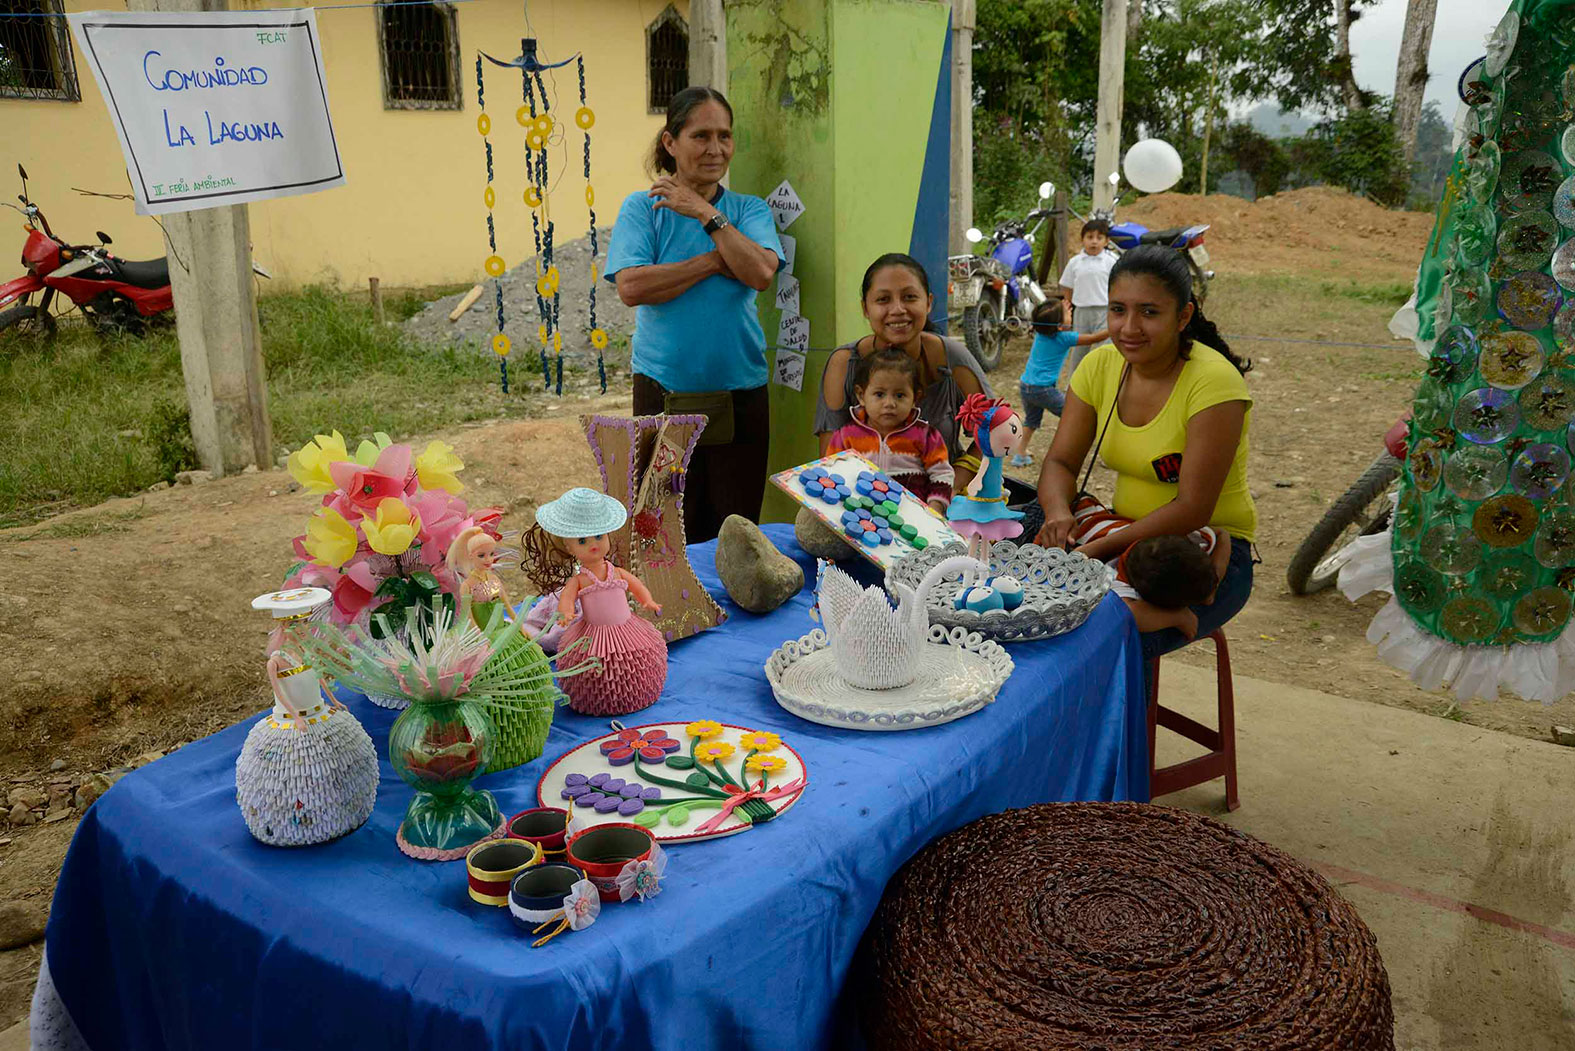 A group of women sit beside a table of handmade crafts